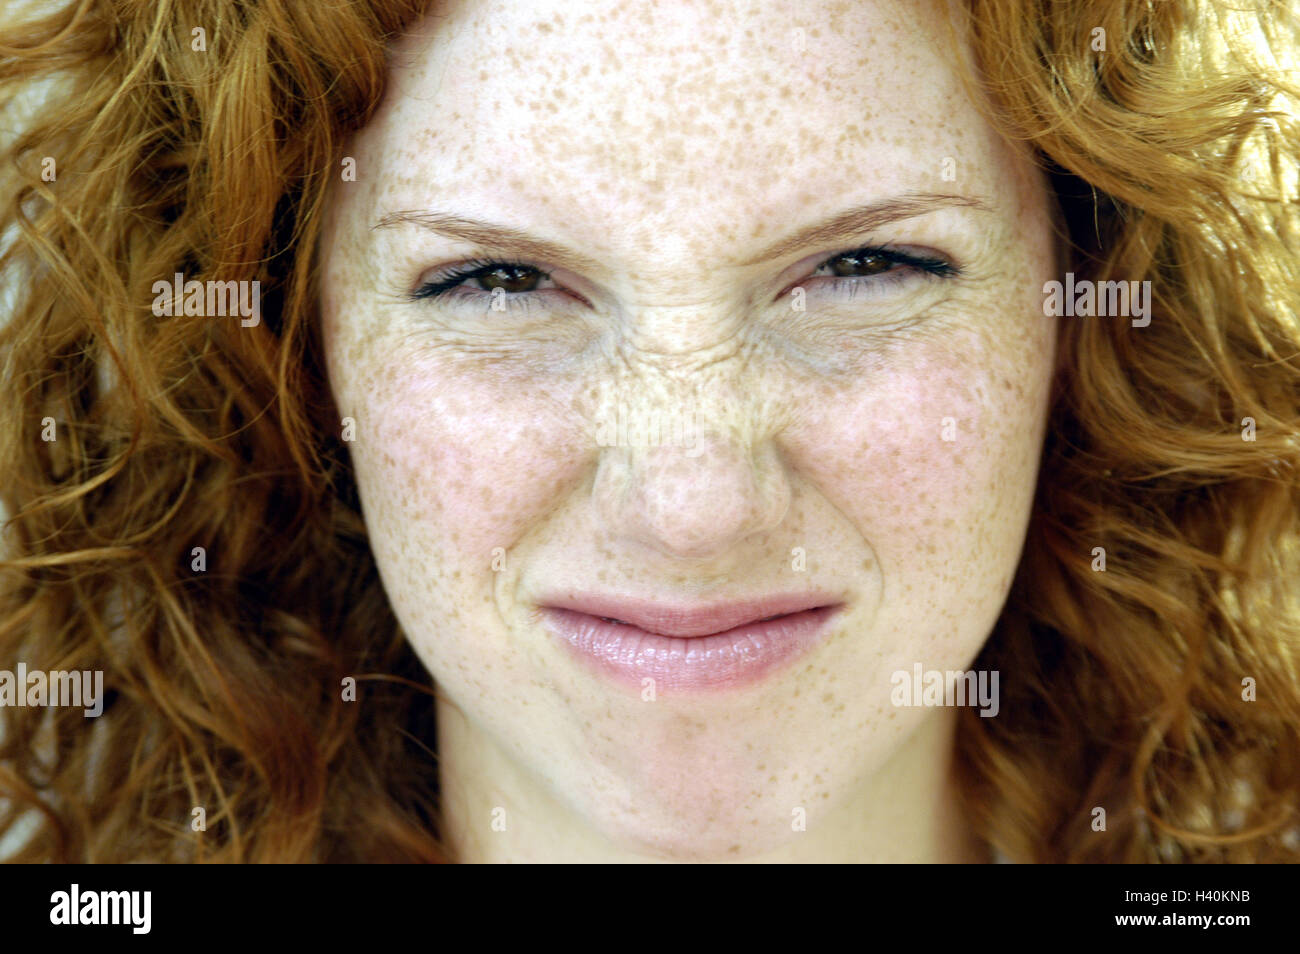 Woman, facial play, nose bodies, portrait, women's portrait, redheads, red-haired, locks, look, expression, - Stock Image